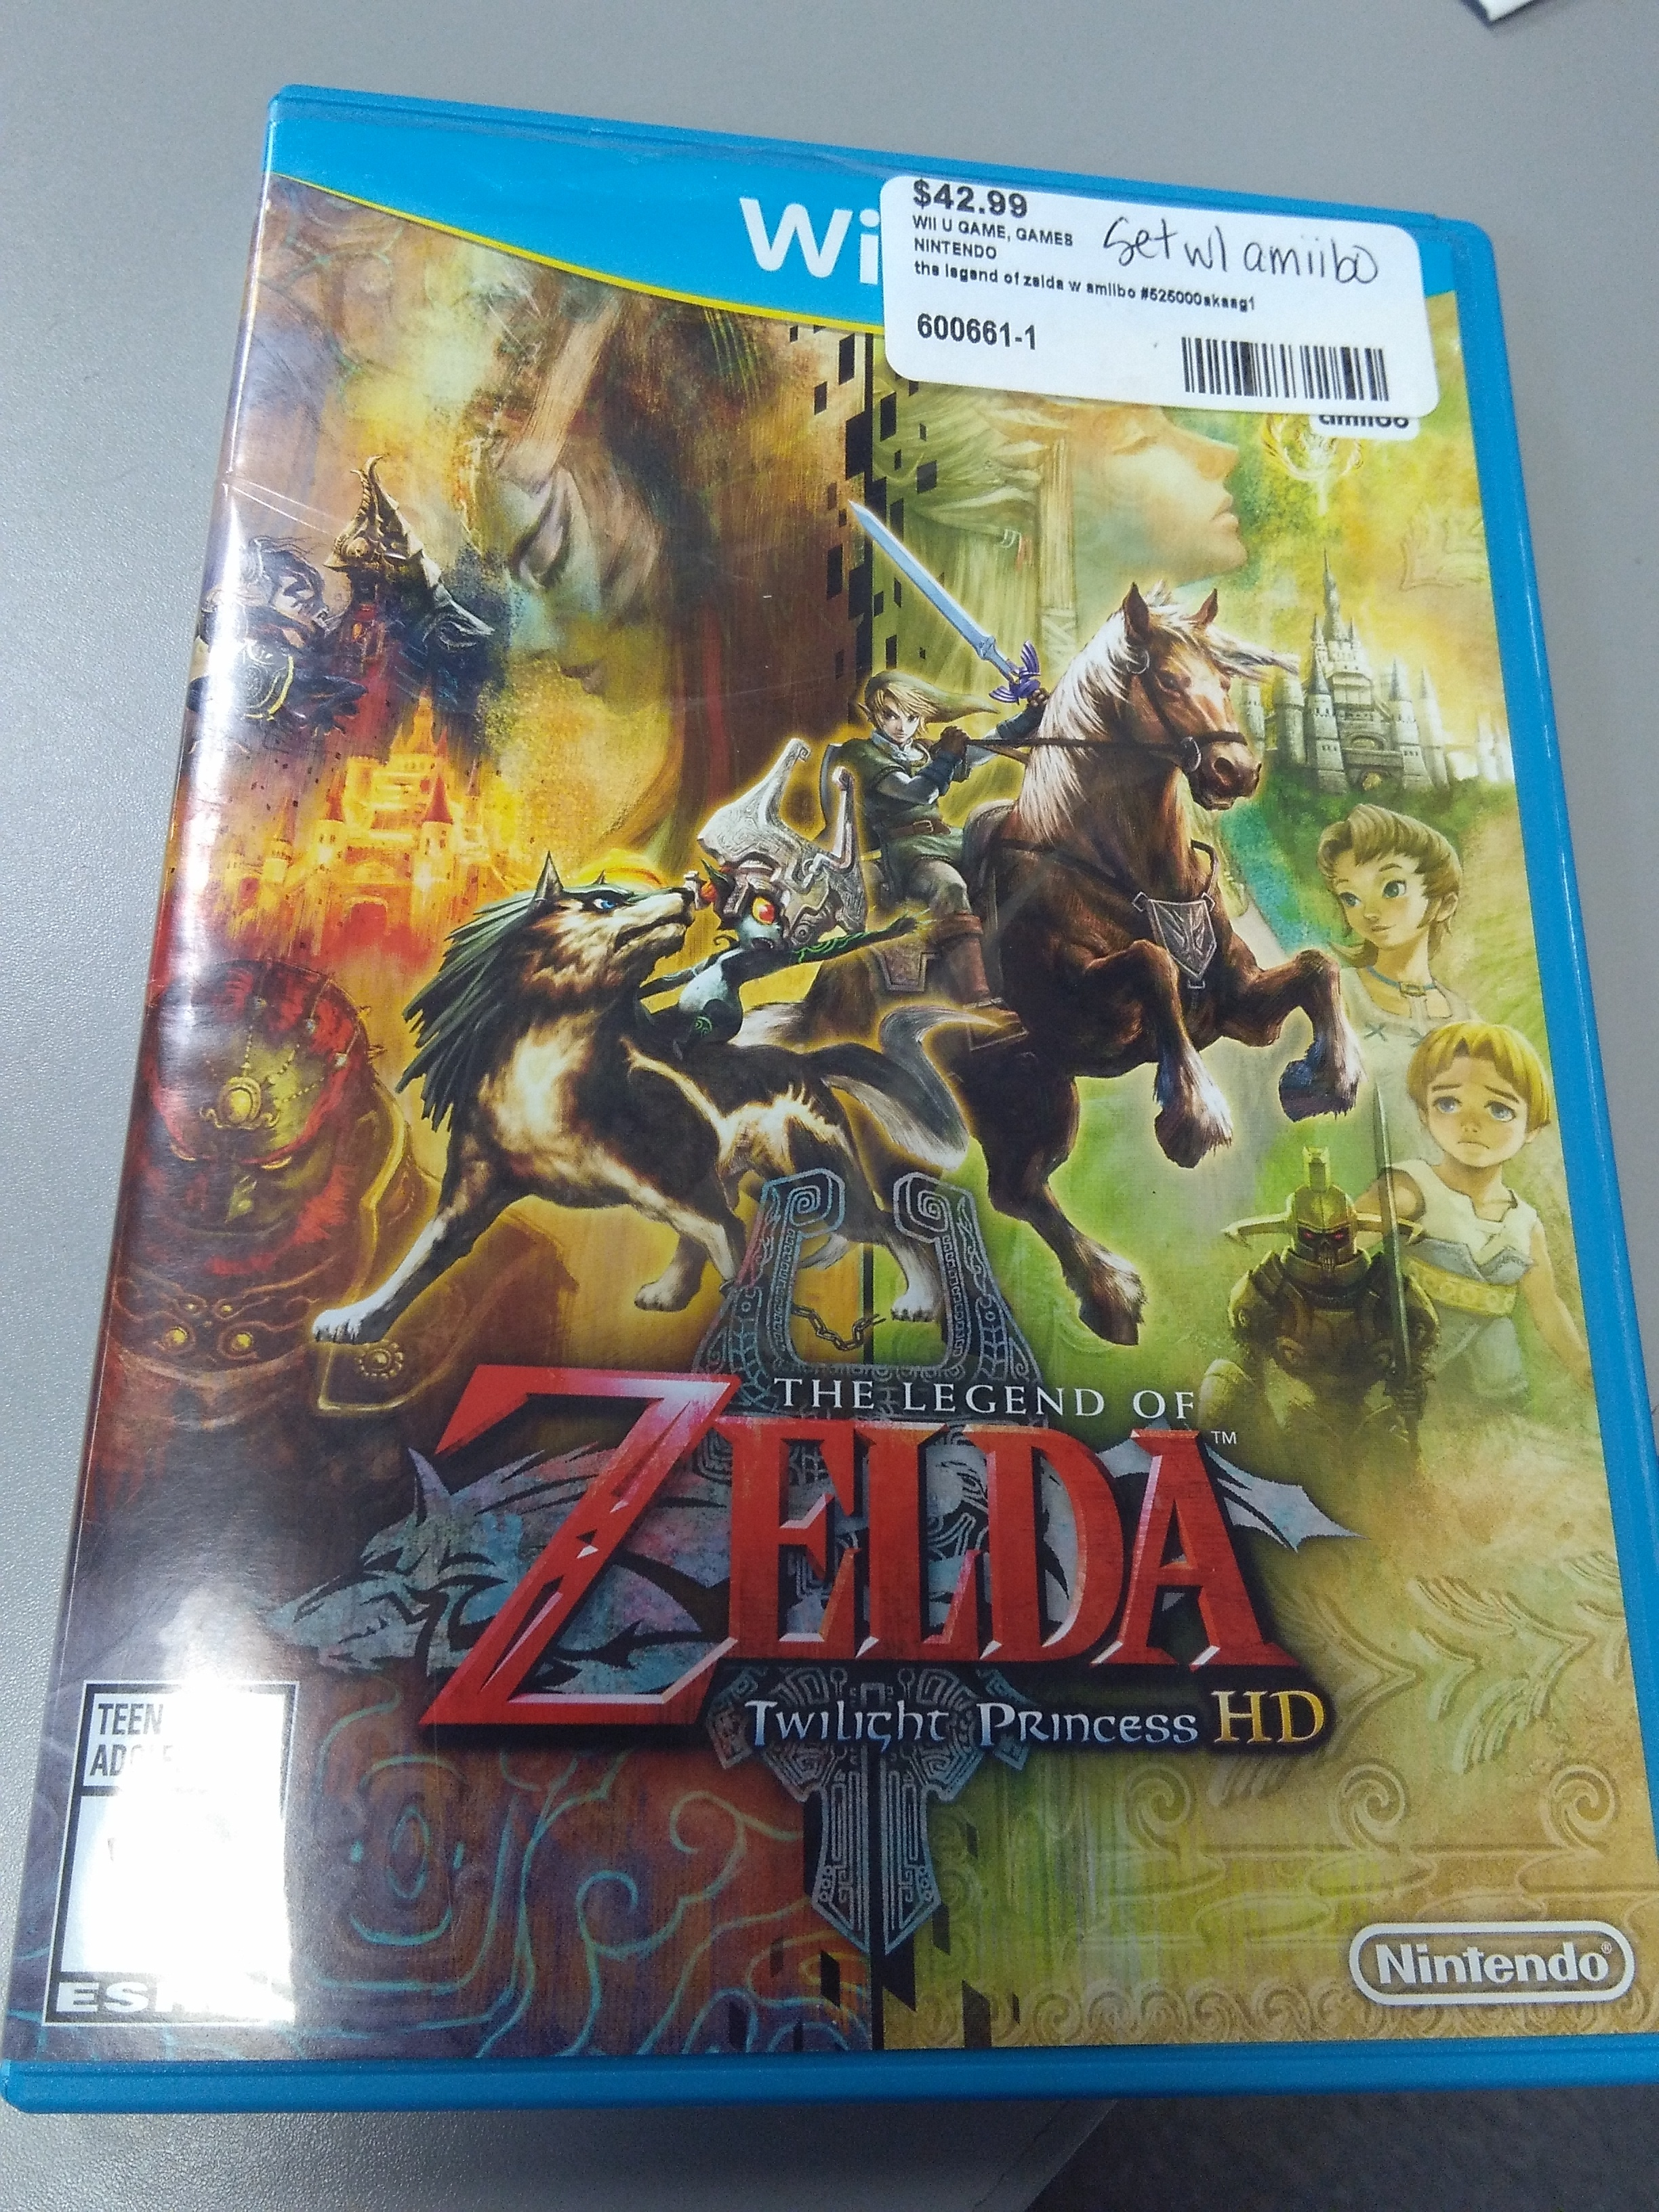 NINTENDO WII U THE LEGEND OF ZELDA TWILIGHT PRINCESS WITH AMIIBO